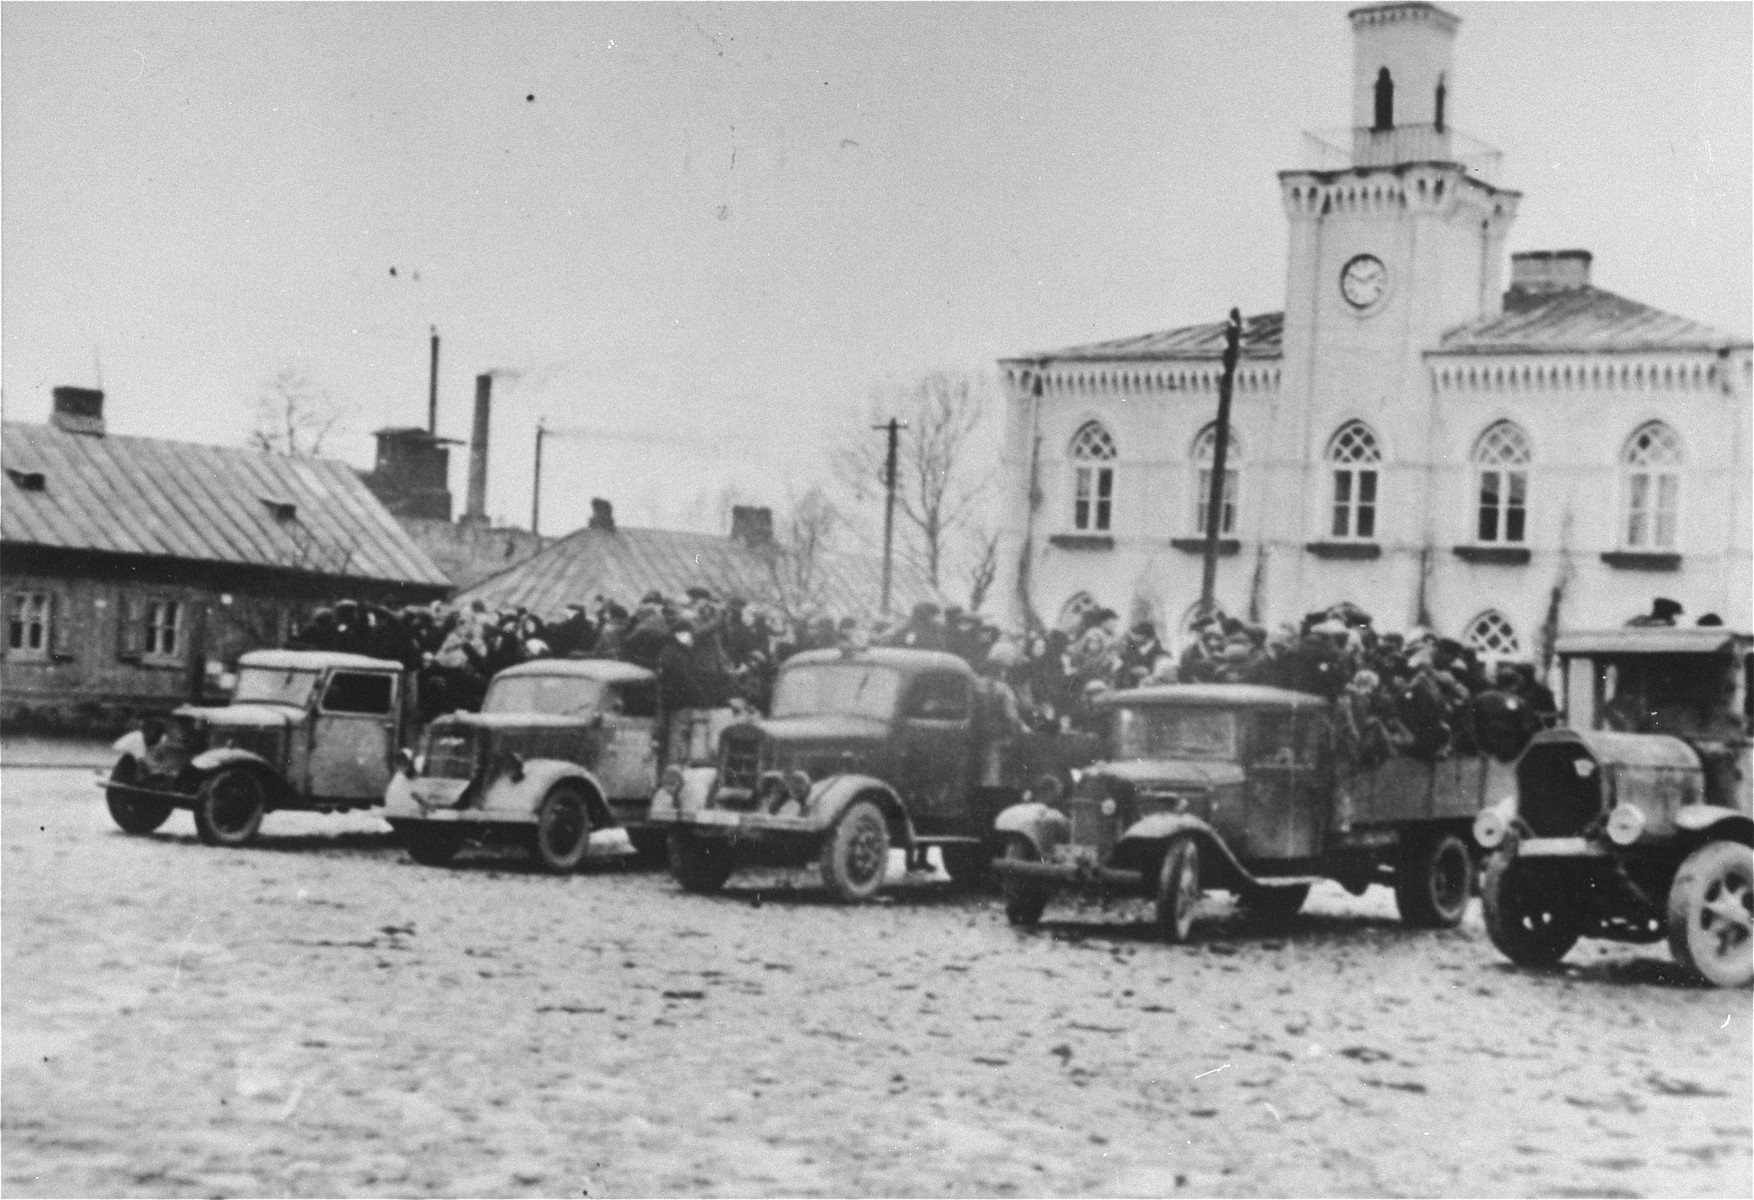 Jews are packed onto a number of trucks that are parked in front of the courthouse and city hall in Marek Square in Ciechanow.